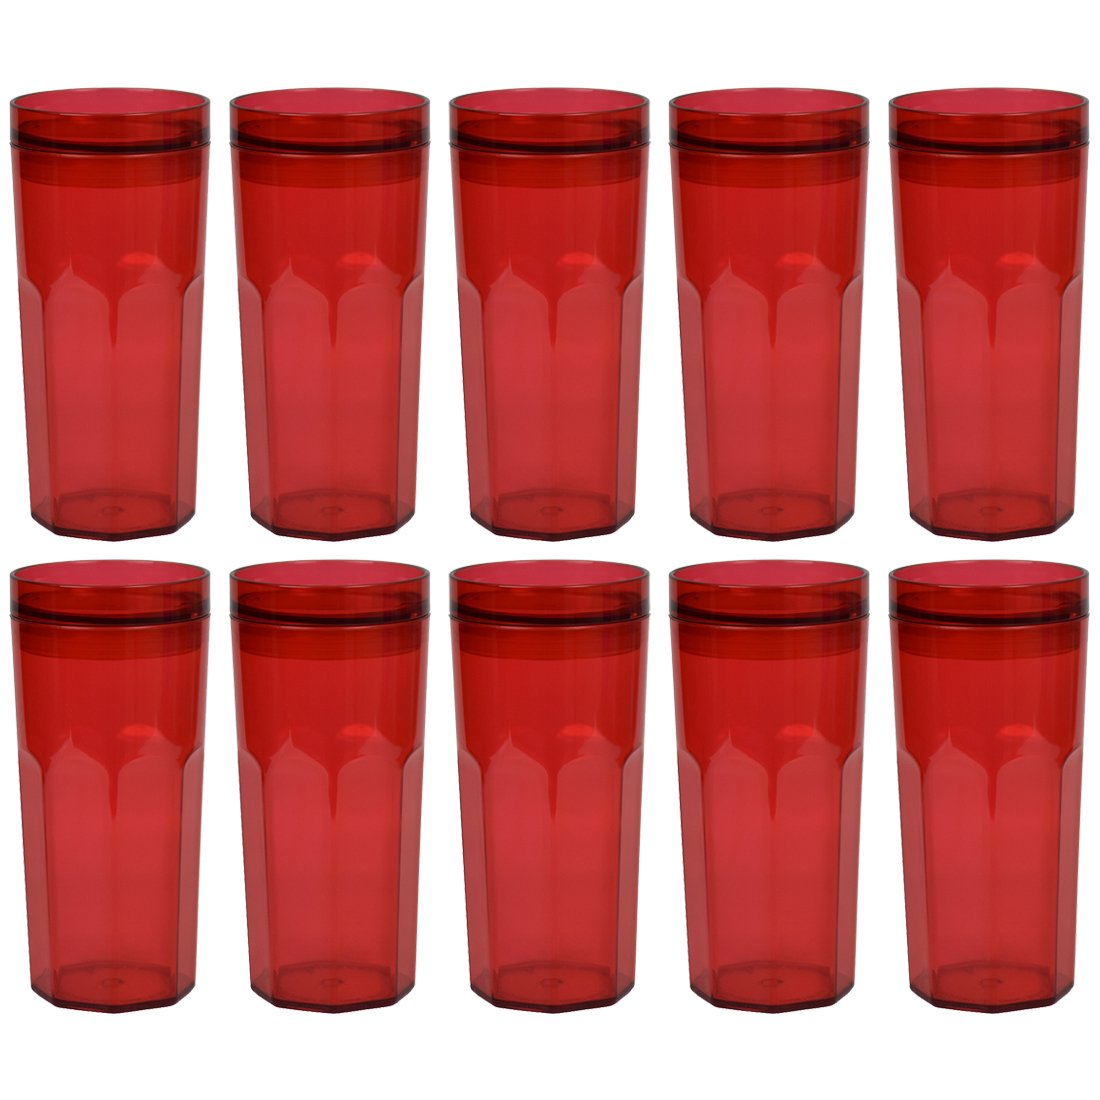 Acrylic Single Wall Retro Tumbler | Push-On Lid | 10pk | Red SandT Collection 10STTU0001RD